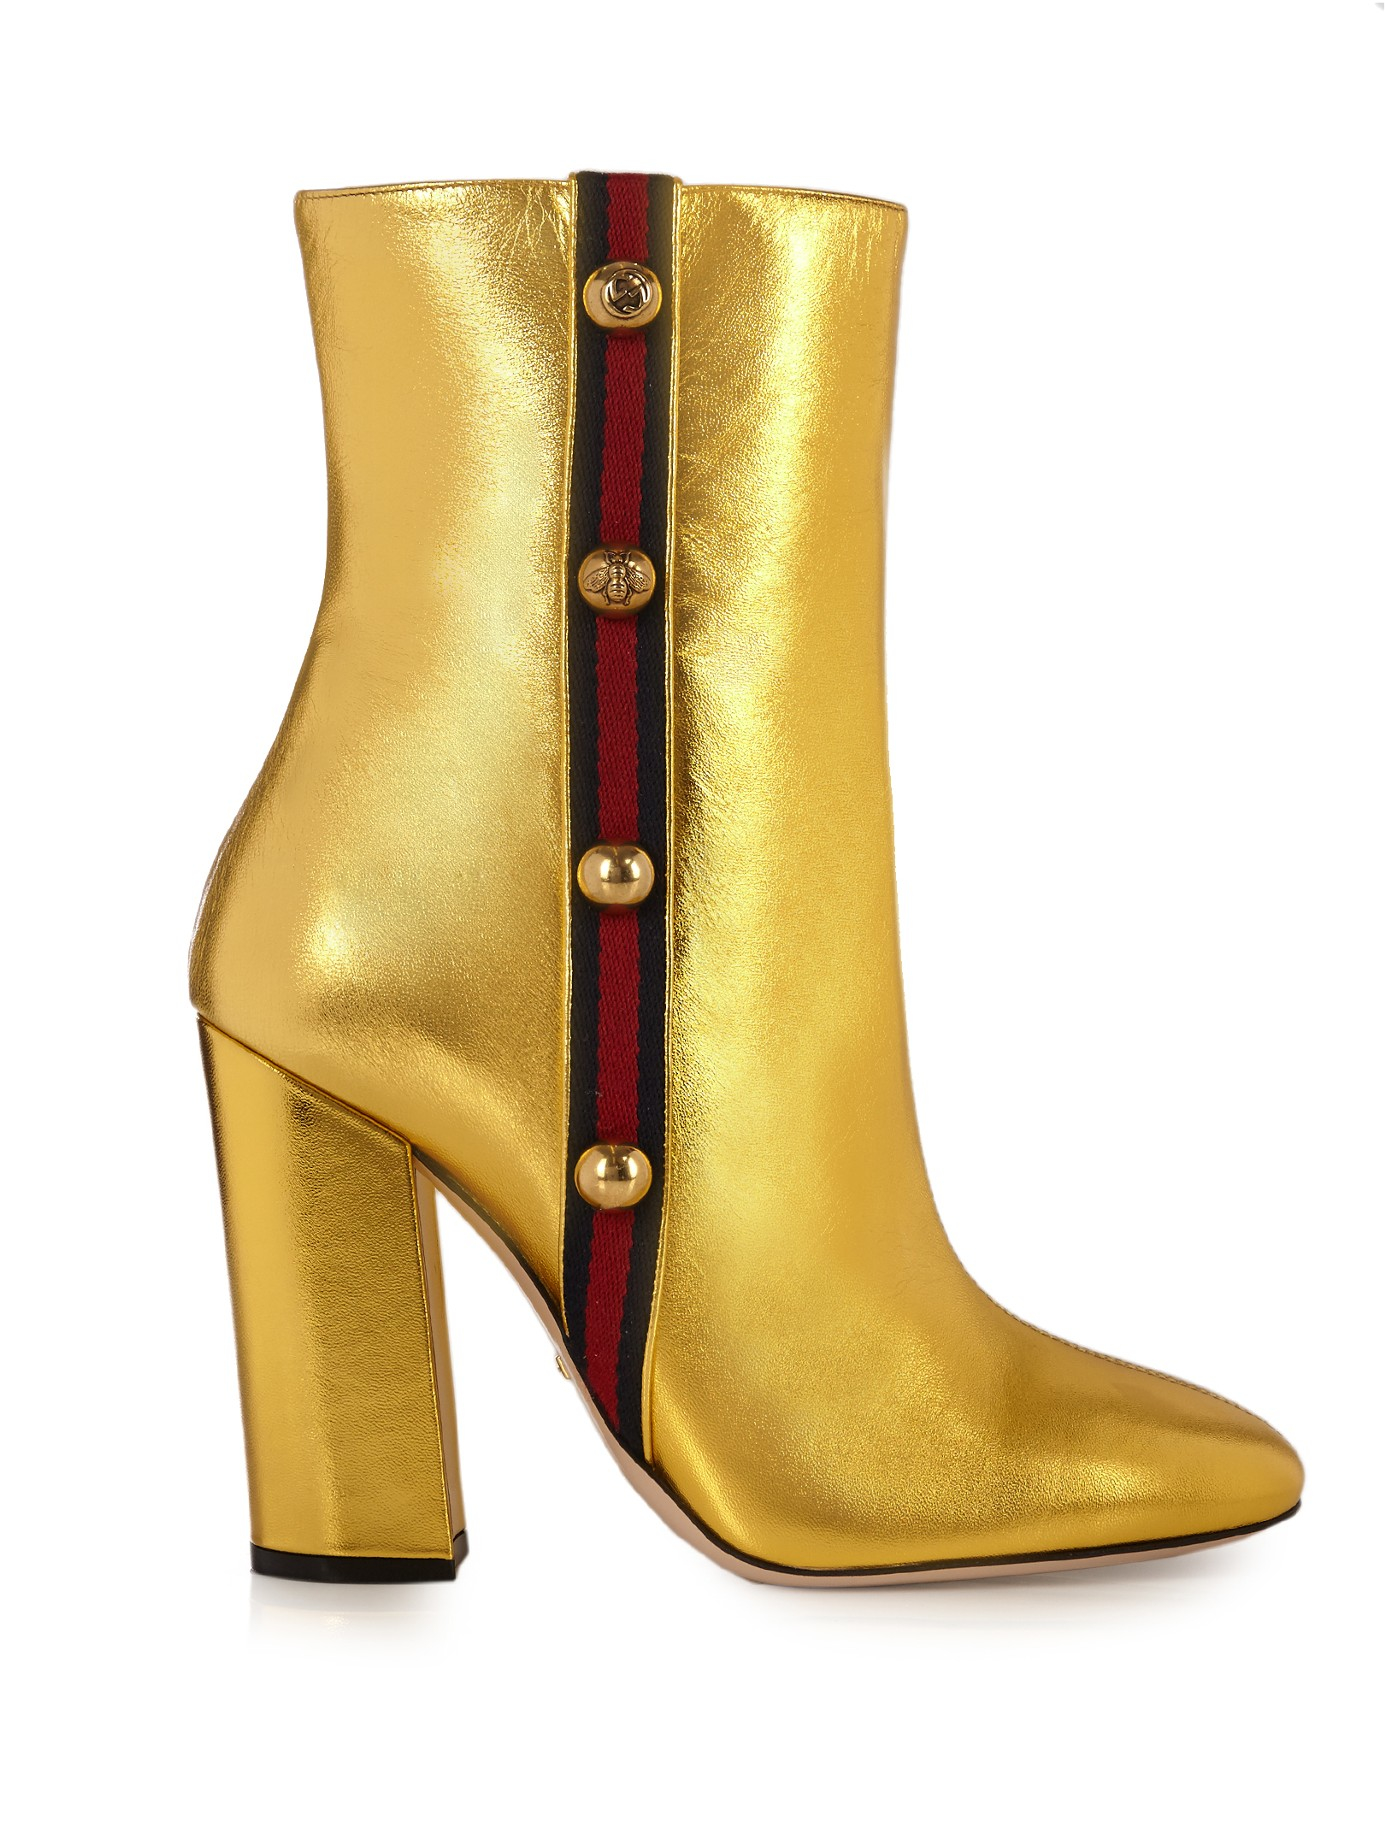 7910ec6ef Gucci Carly Leather Boots in Metallic - Lyst